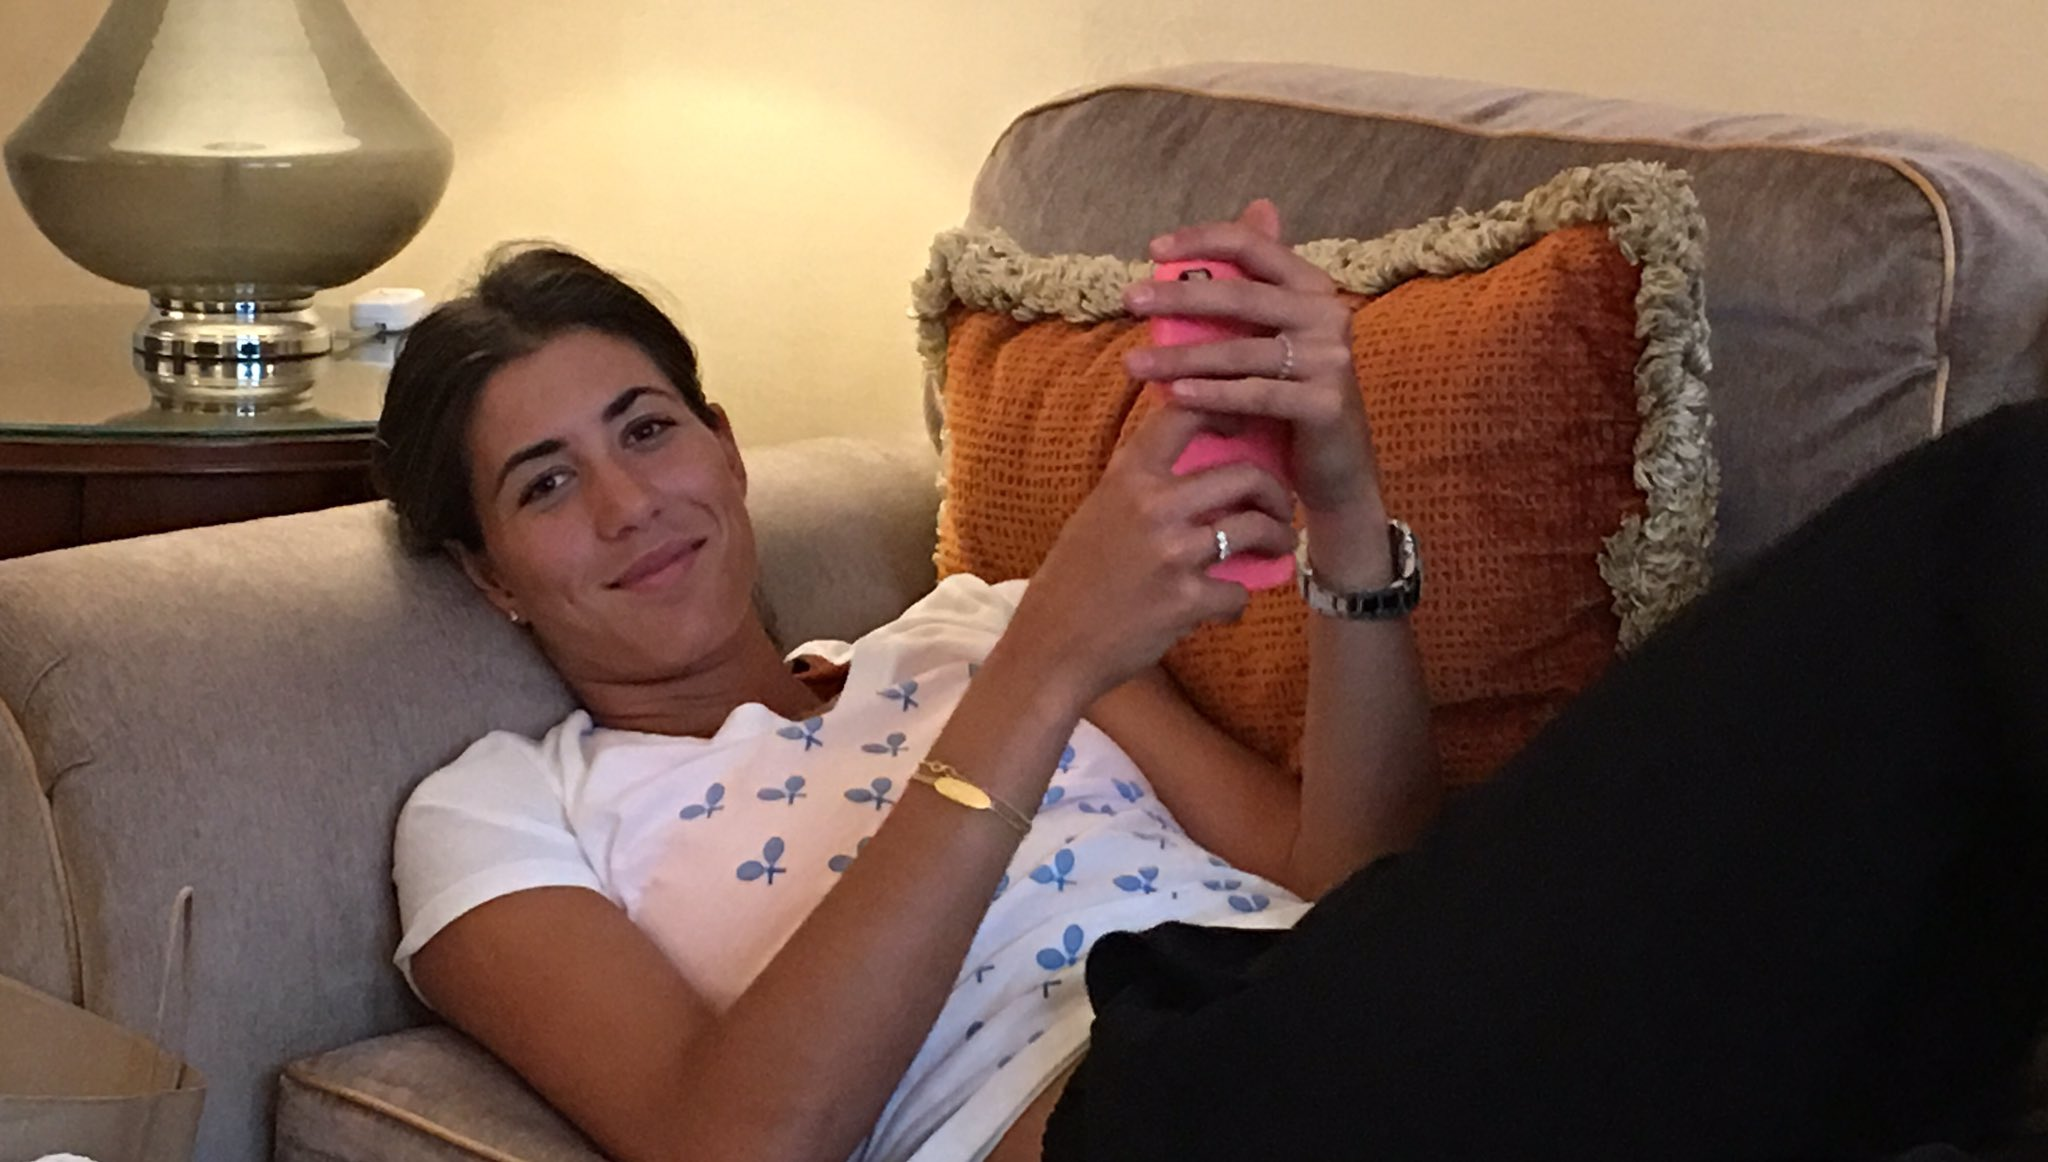 Resting... Descansando... ���� NYC!! @usopen @WTA https://t.co/YQiZMRhOkT